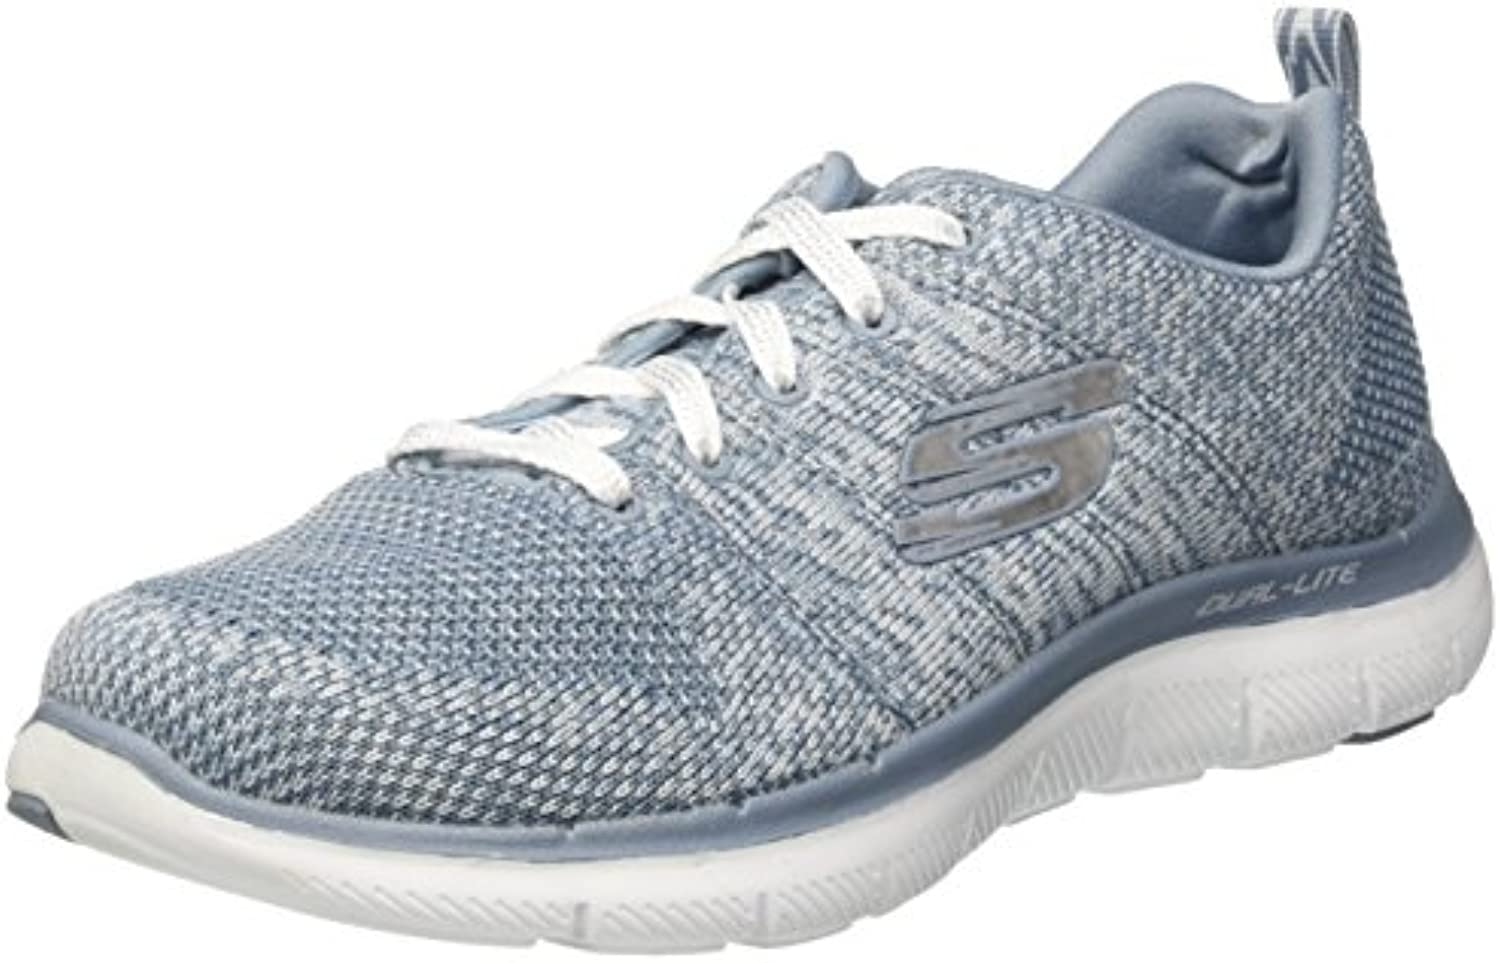 Skechers Flex Appeal 2.0-High Energy 01c0617e90c